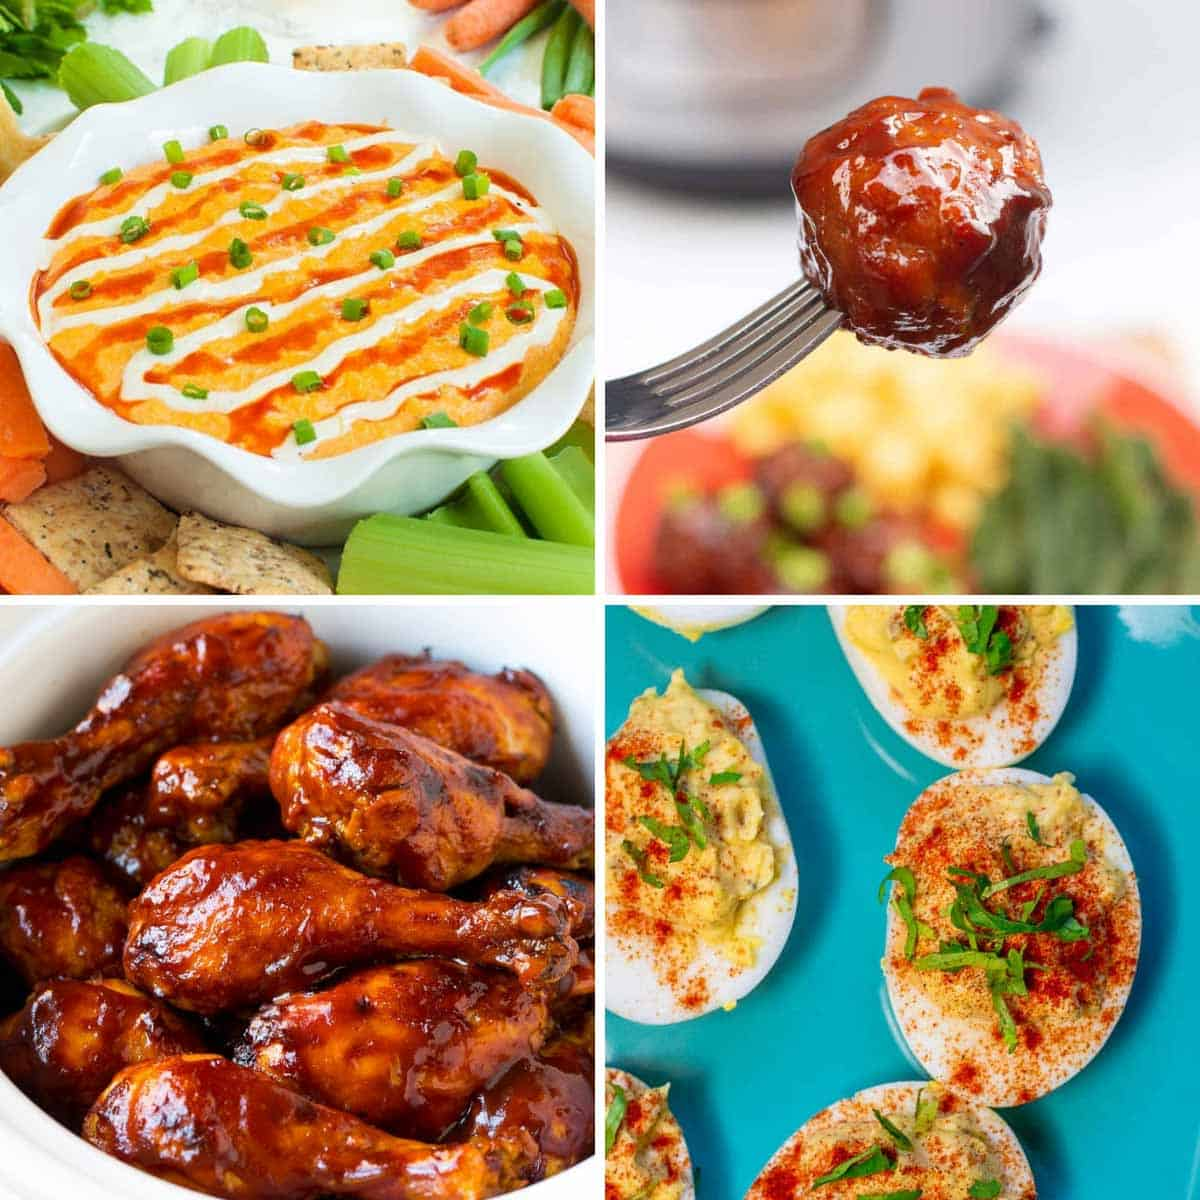 Four images in a grid, buffalo chicken dip in a bowl, bbq meatball on a fork, bbq chicken drumsticks, and hard boiled eggs.